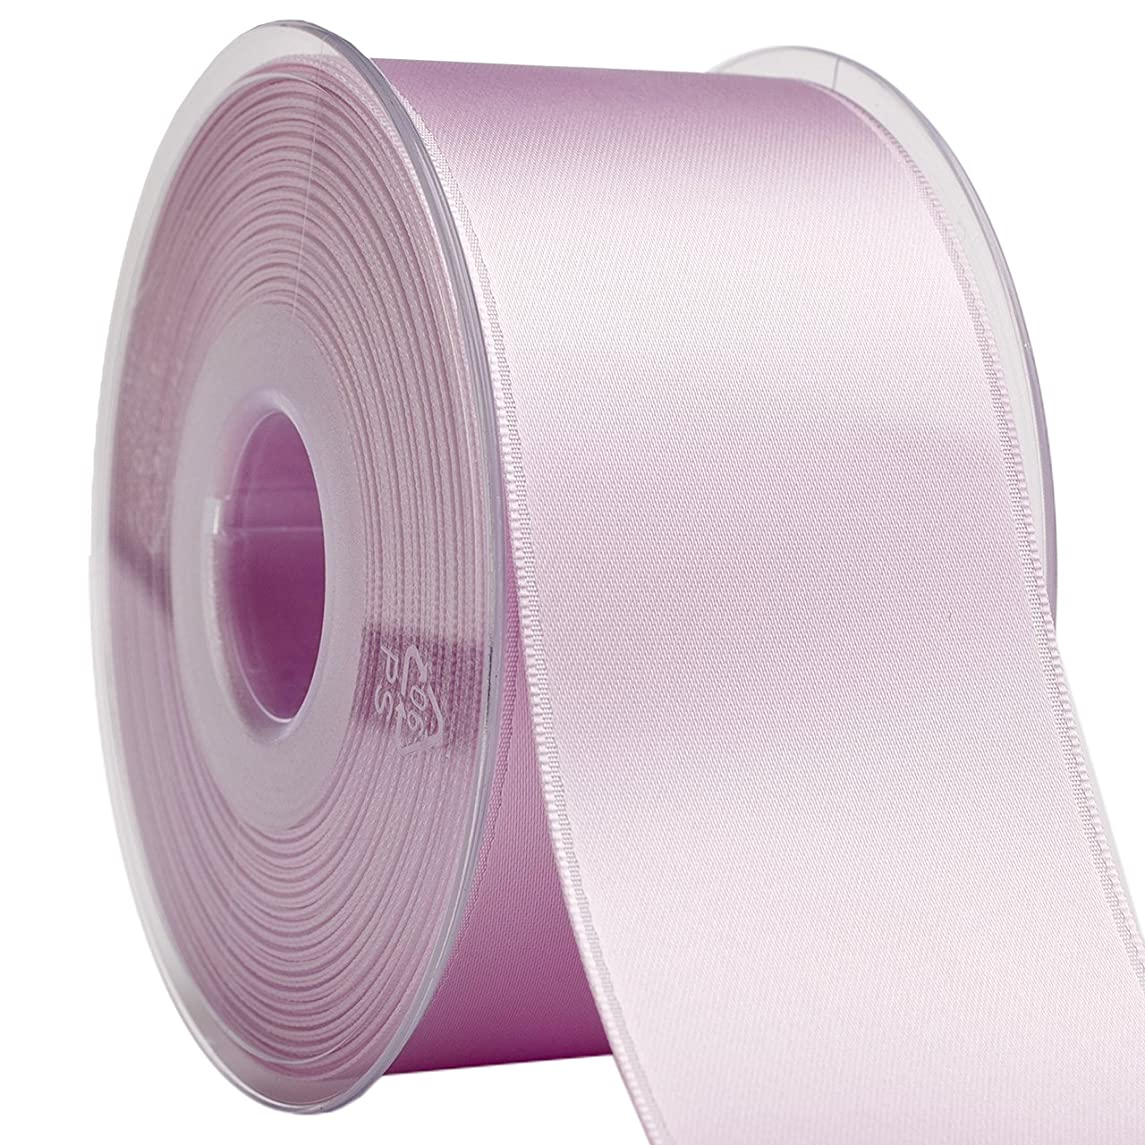 035 Swiss Satin 03550/25-013 Fabric Ribbon, 2